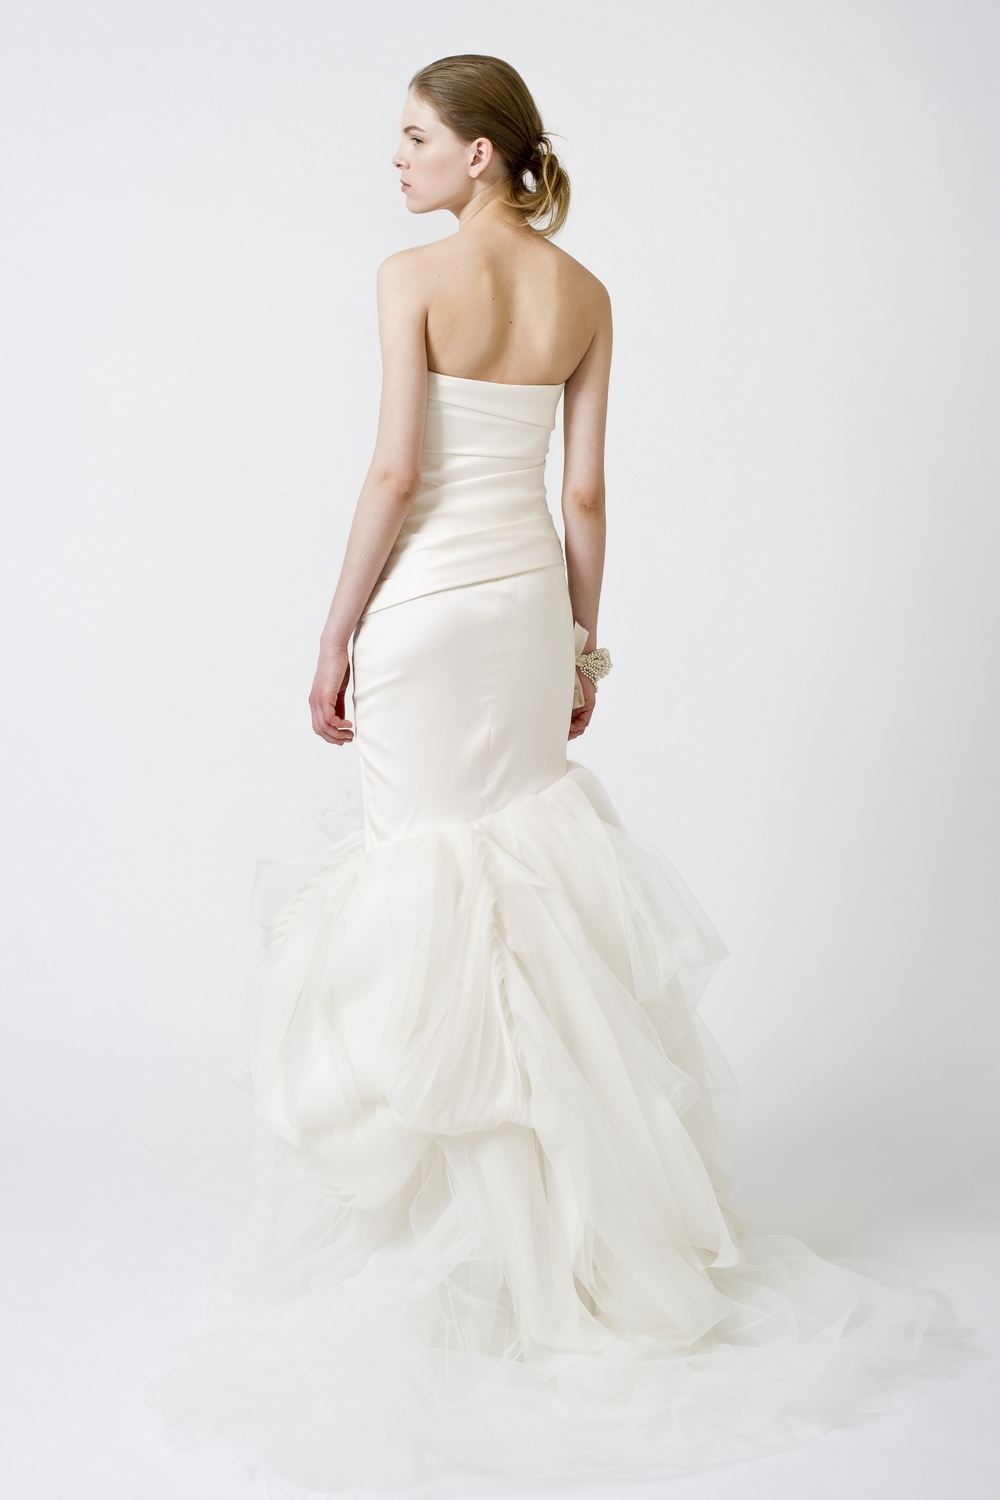 5-spring-2011-vera-wang-wedding-dresses-white-one-shoulder-back.full